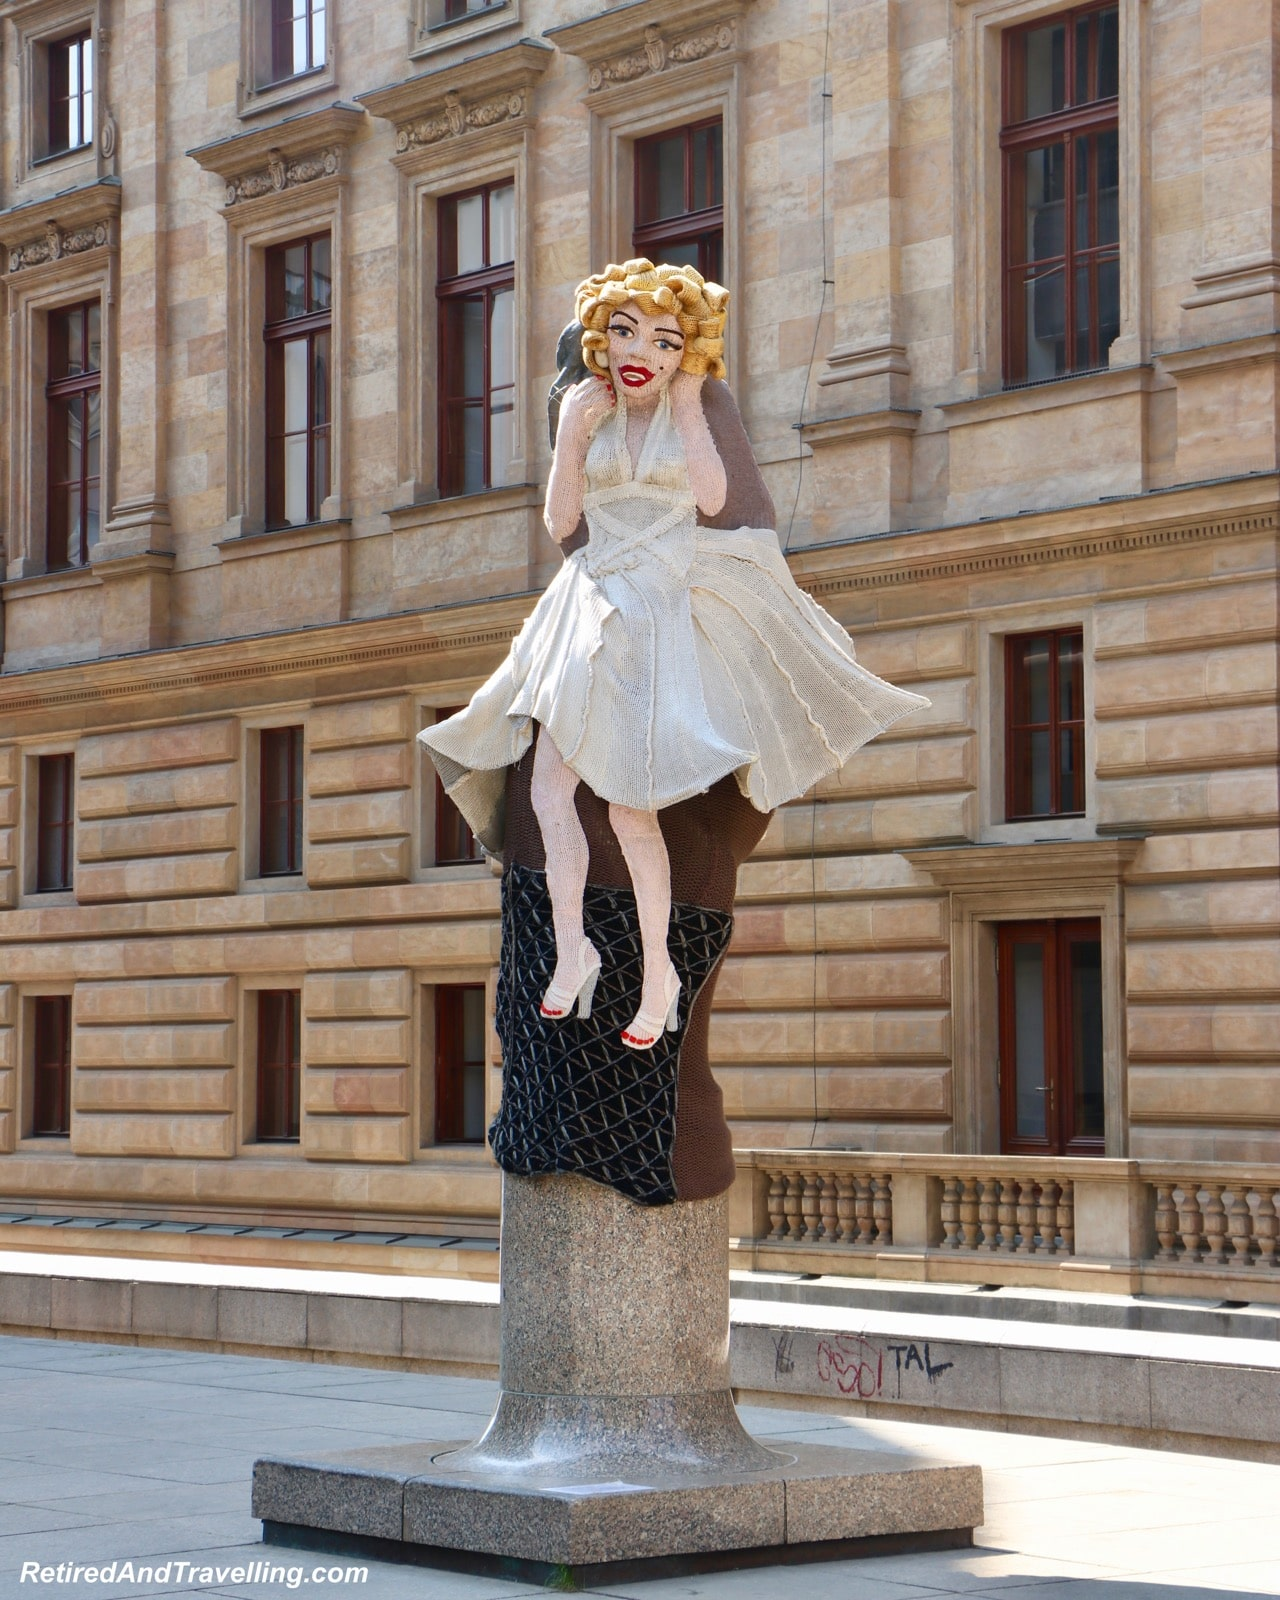 Marilyn Monroe Statue National Theatre Riverfront Walk Views - Cruise the Vltava River in Prague.jpg